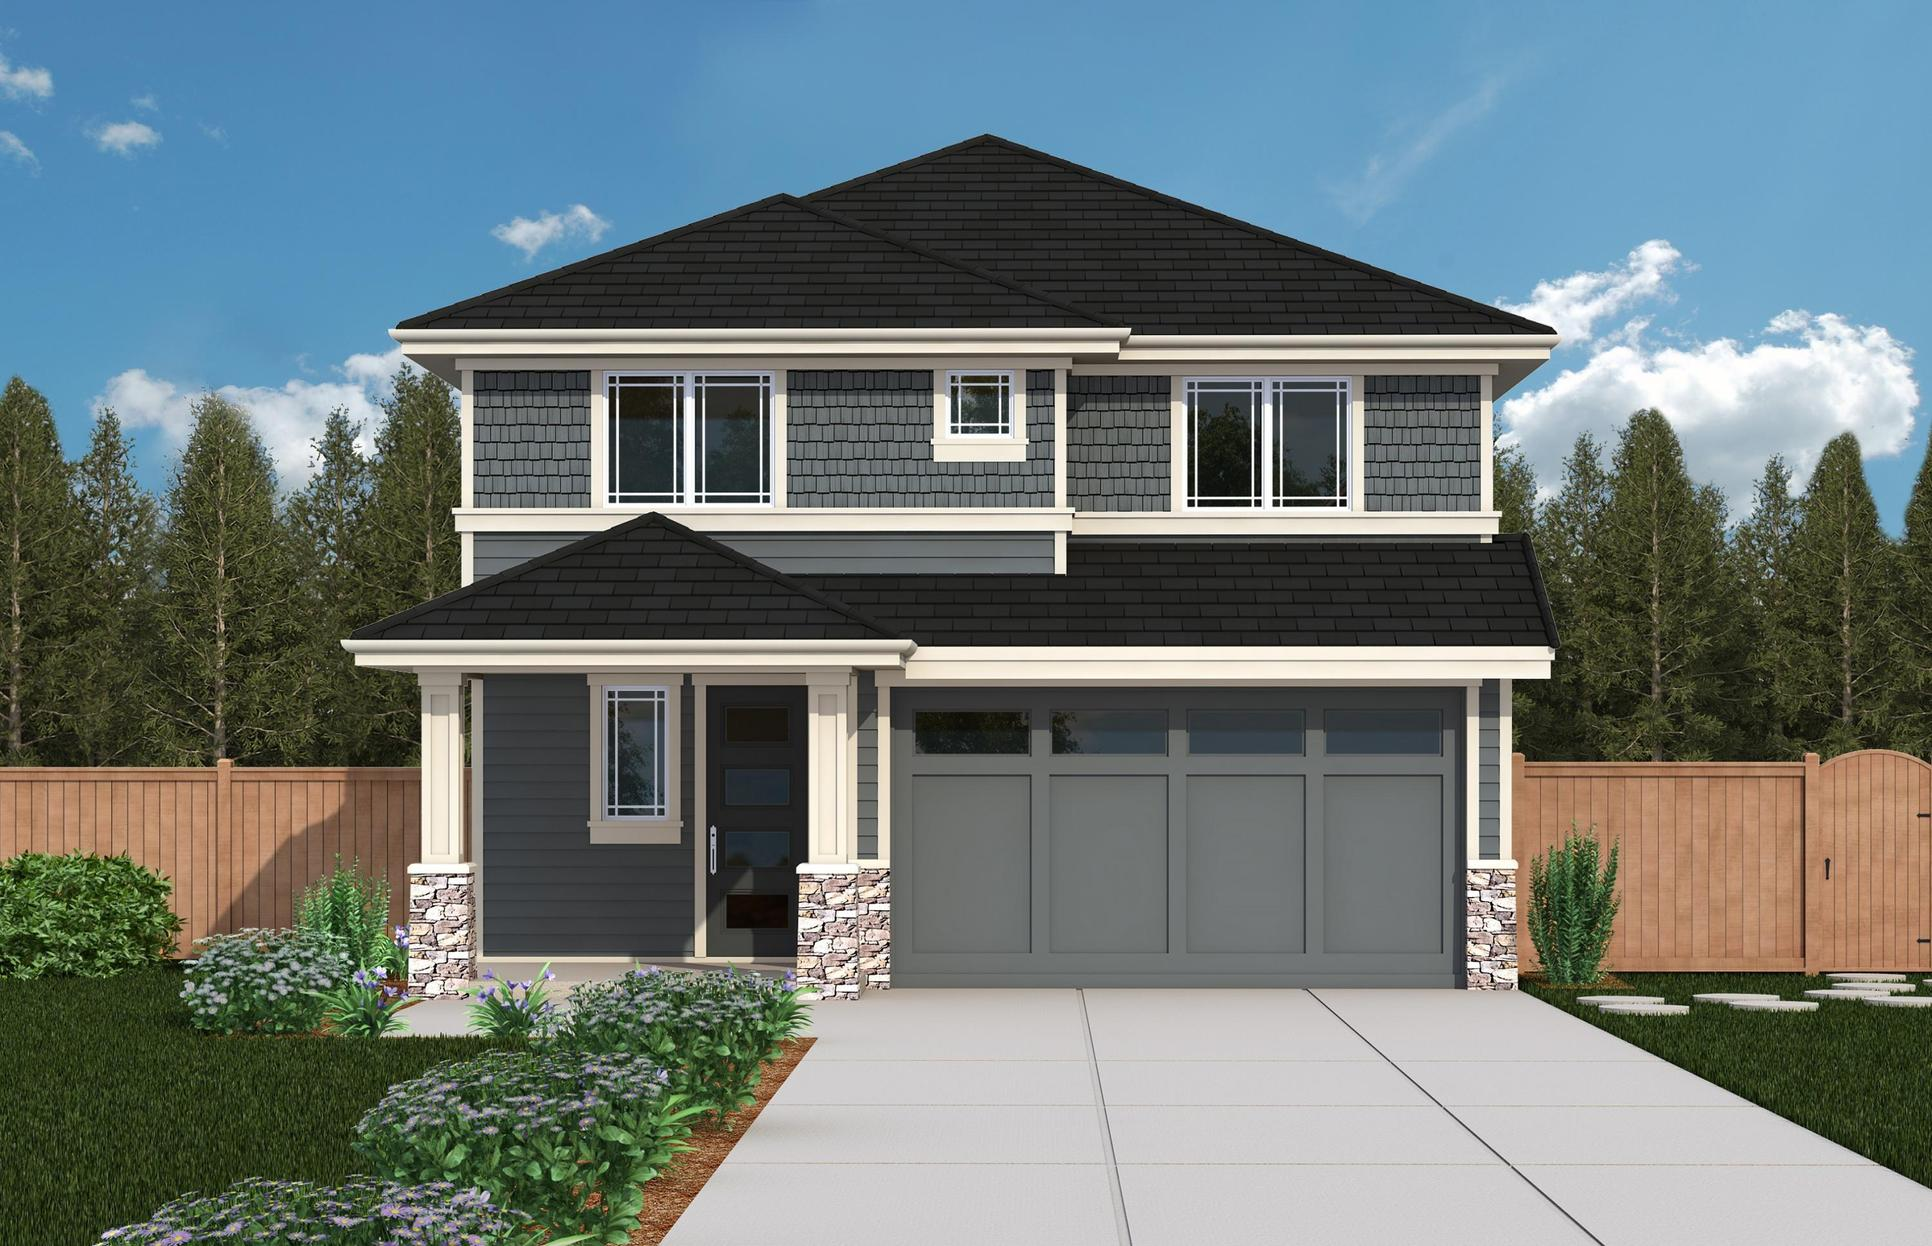 Exterior:CT 3082B - Elevation 1